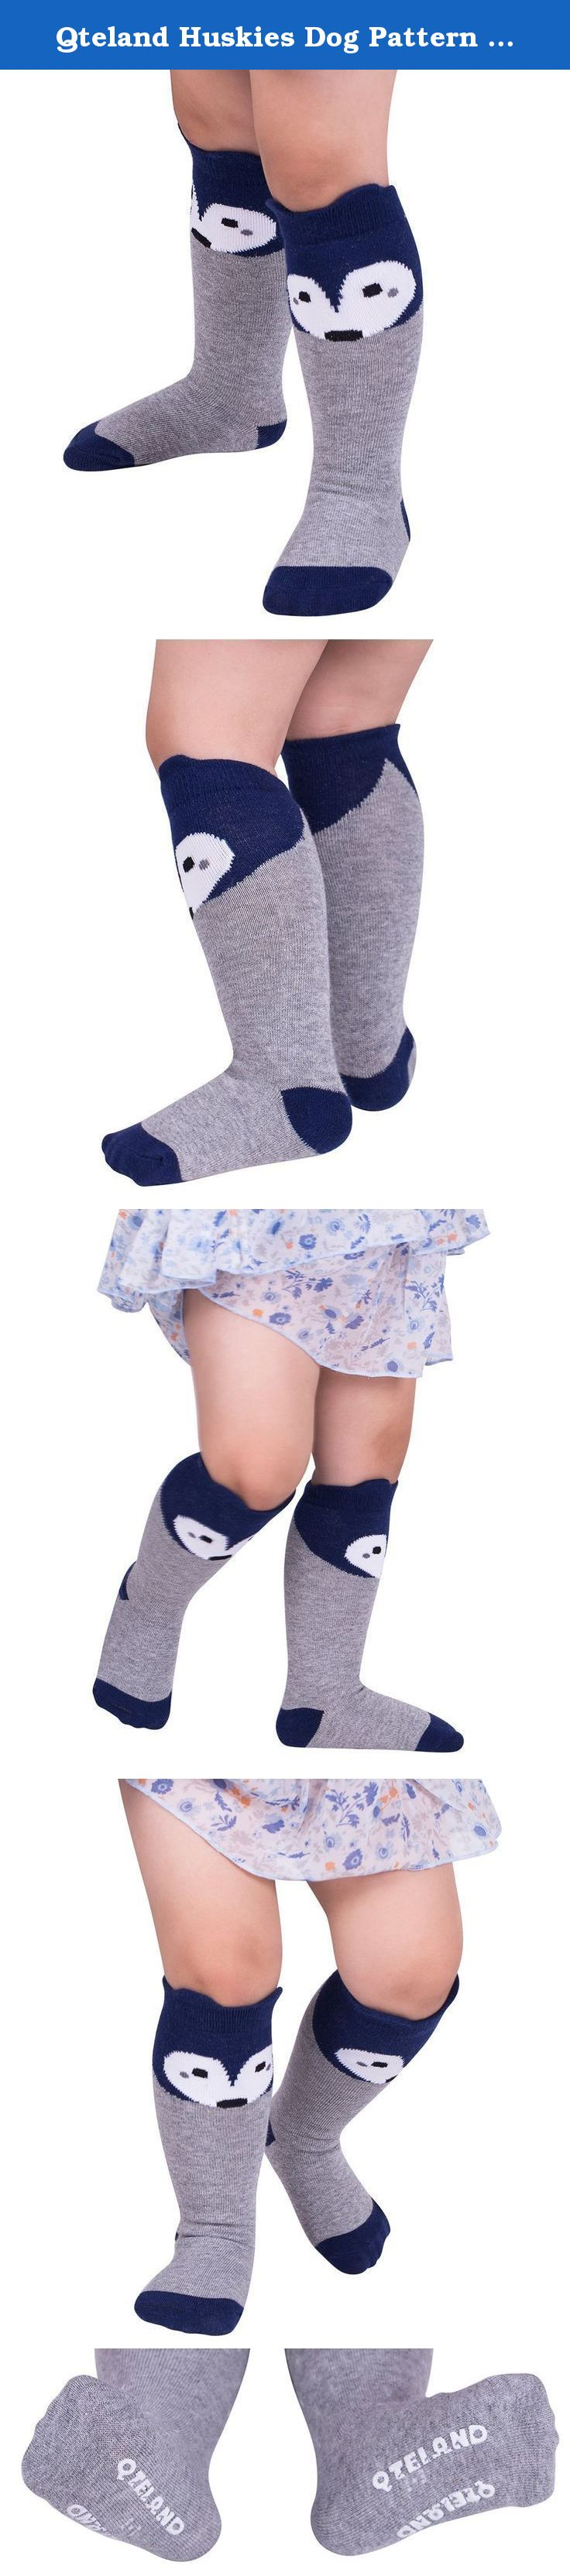 Qteland Huskies Dog Pattern Unisex-baby Knee High Socks Tube socks for Kids 2-pack (M(1-3 years), Mix). Qteland Cotton high knee socks for Babies are an adorable and fashion item dress up your little one. Look for all of our adorable high knee socks! Available in stripes, Geometry,fox,cat,Mickey Mouse,bear, rabbit and so on. A material composition for comfort these socks are made of 75% cotton, 20% polyester, and 5% spandex for a snug, comfortable fit. Three size for your choose Size S: 0-12...